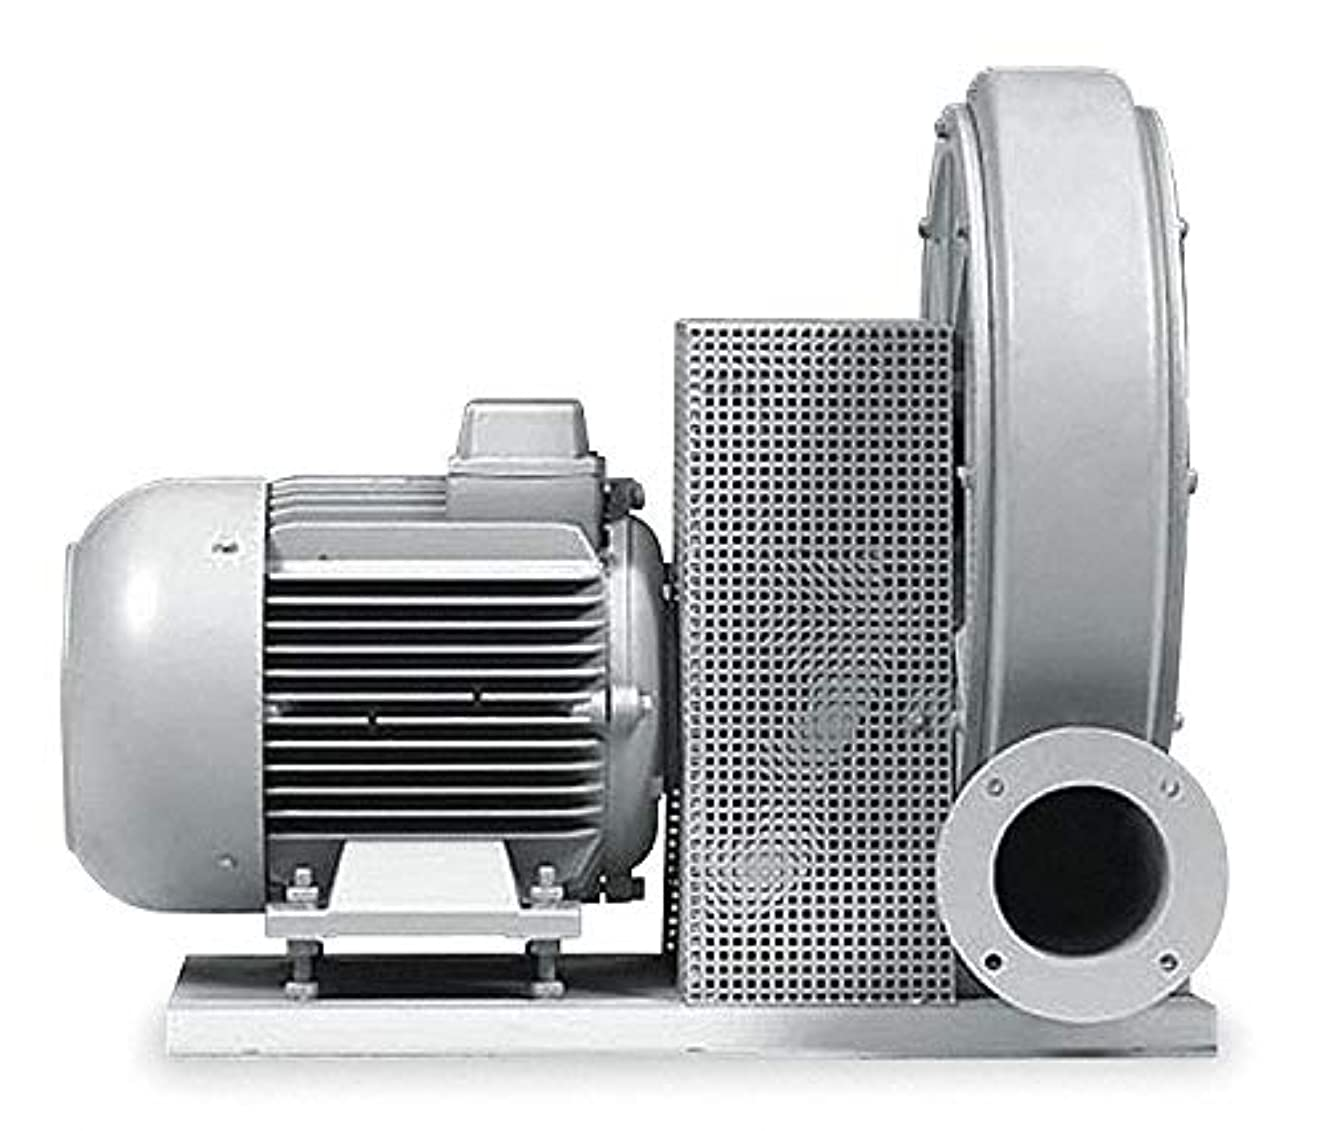 15 Regenerative Blower 3 Phase, 208-230/460 Voltage, 6.30